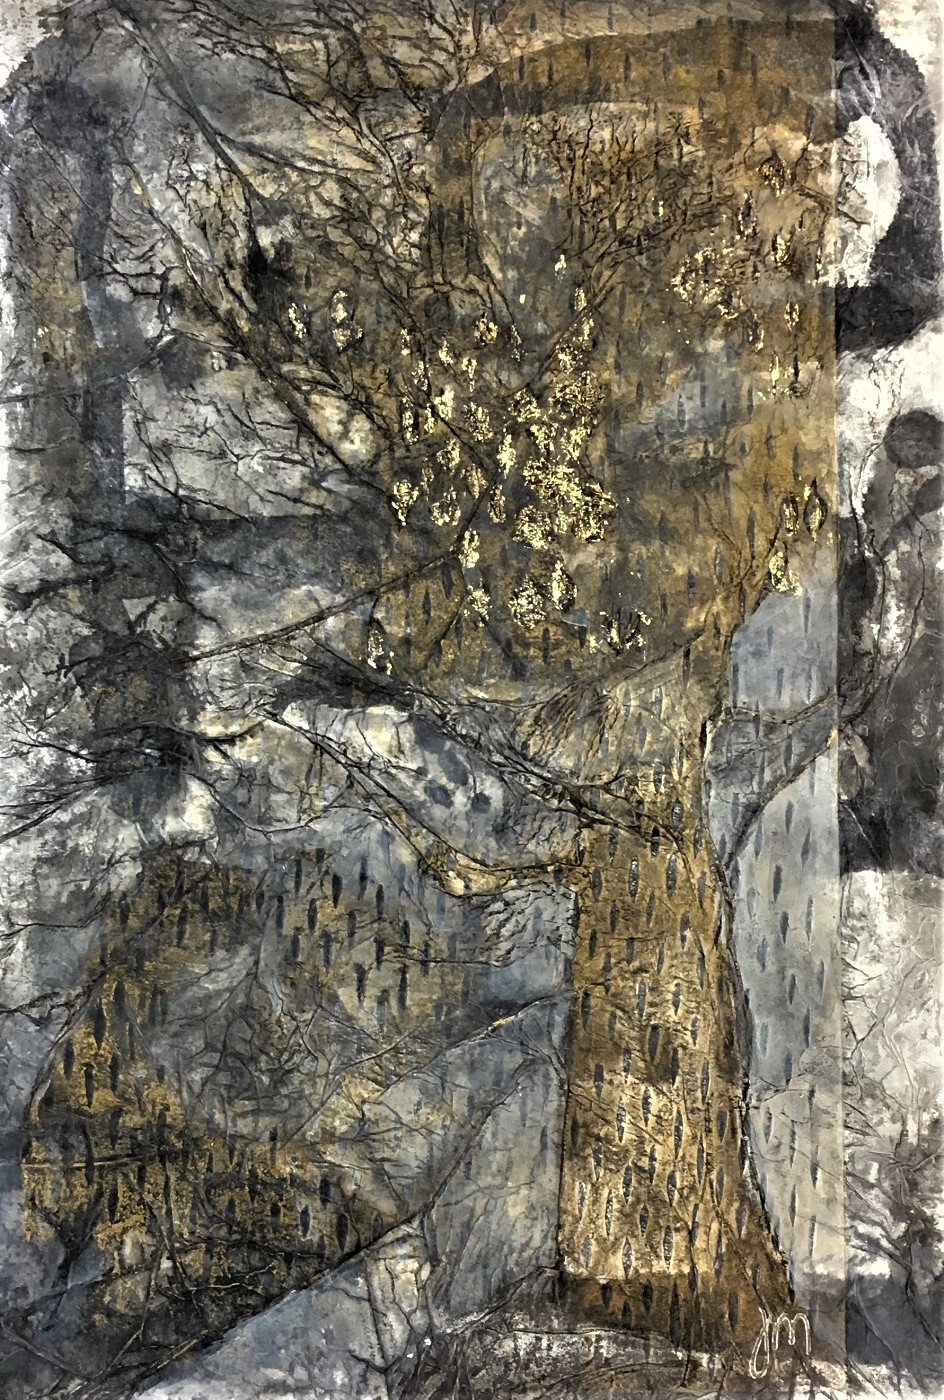 The Wise Old tree Mixed print work - woodcut, chine colle on paper Framed - 810mm h x 585mm w